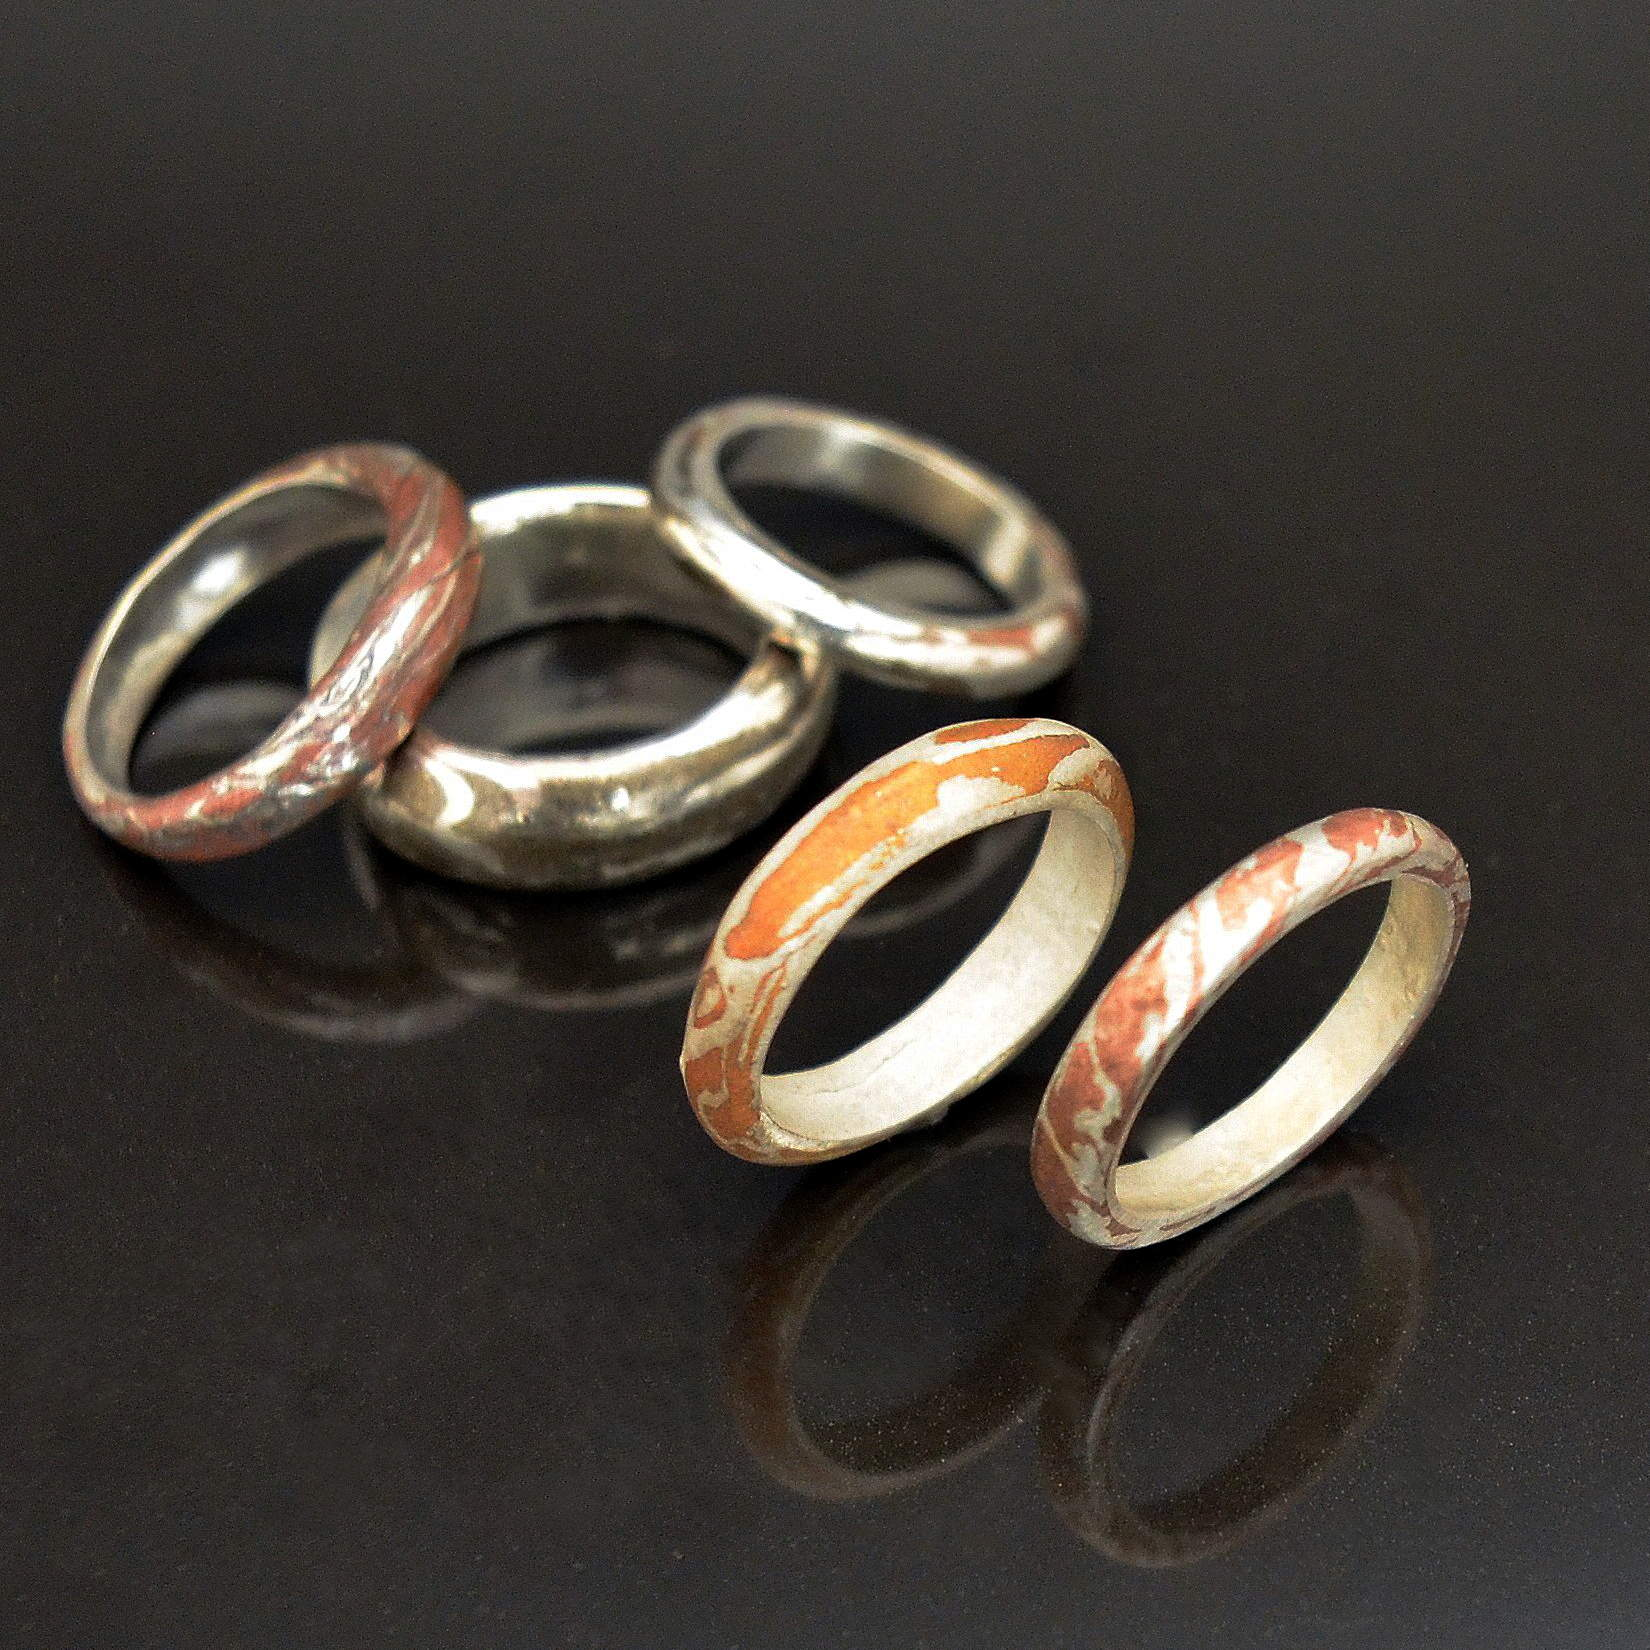 Mokume Gane Rings by Tracey Spurgin of Craftworx Jewellery Workshops